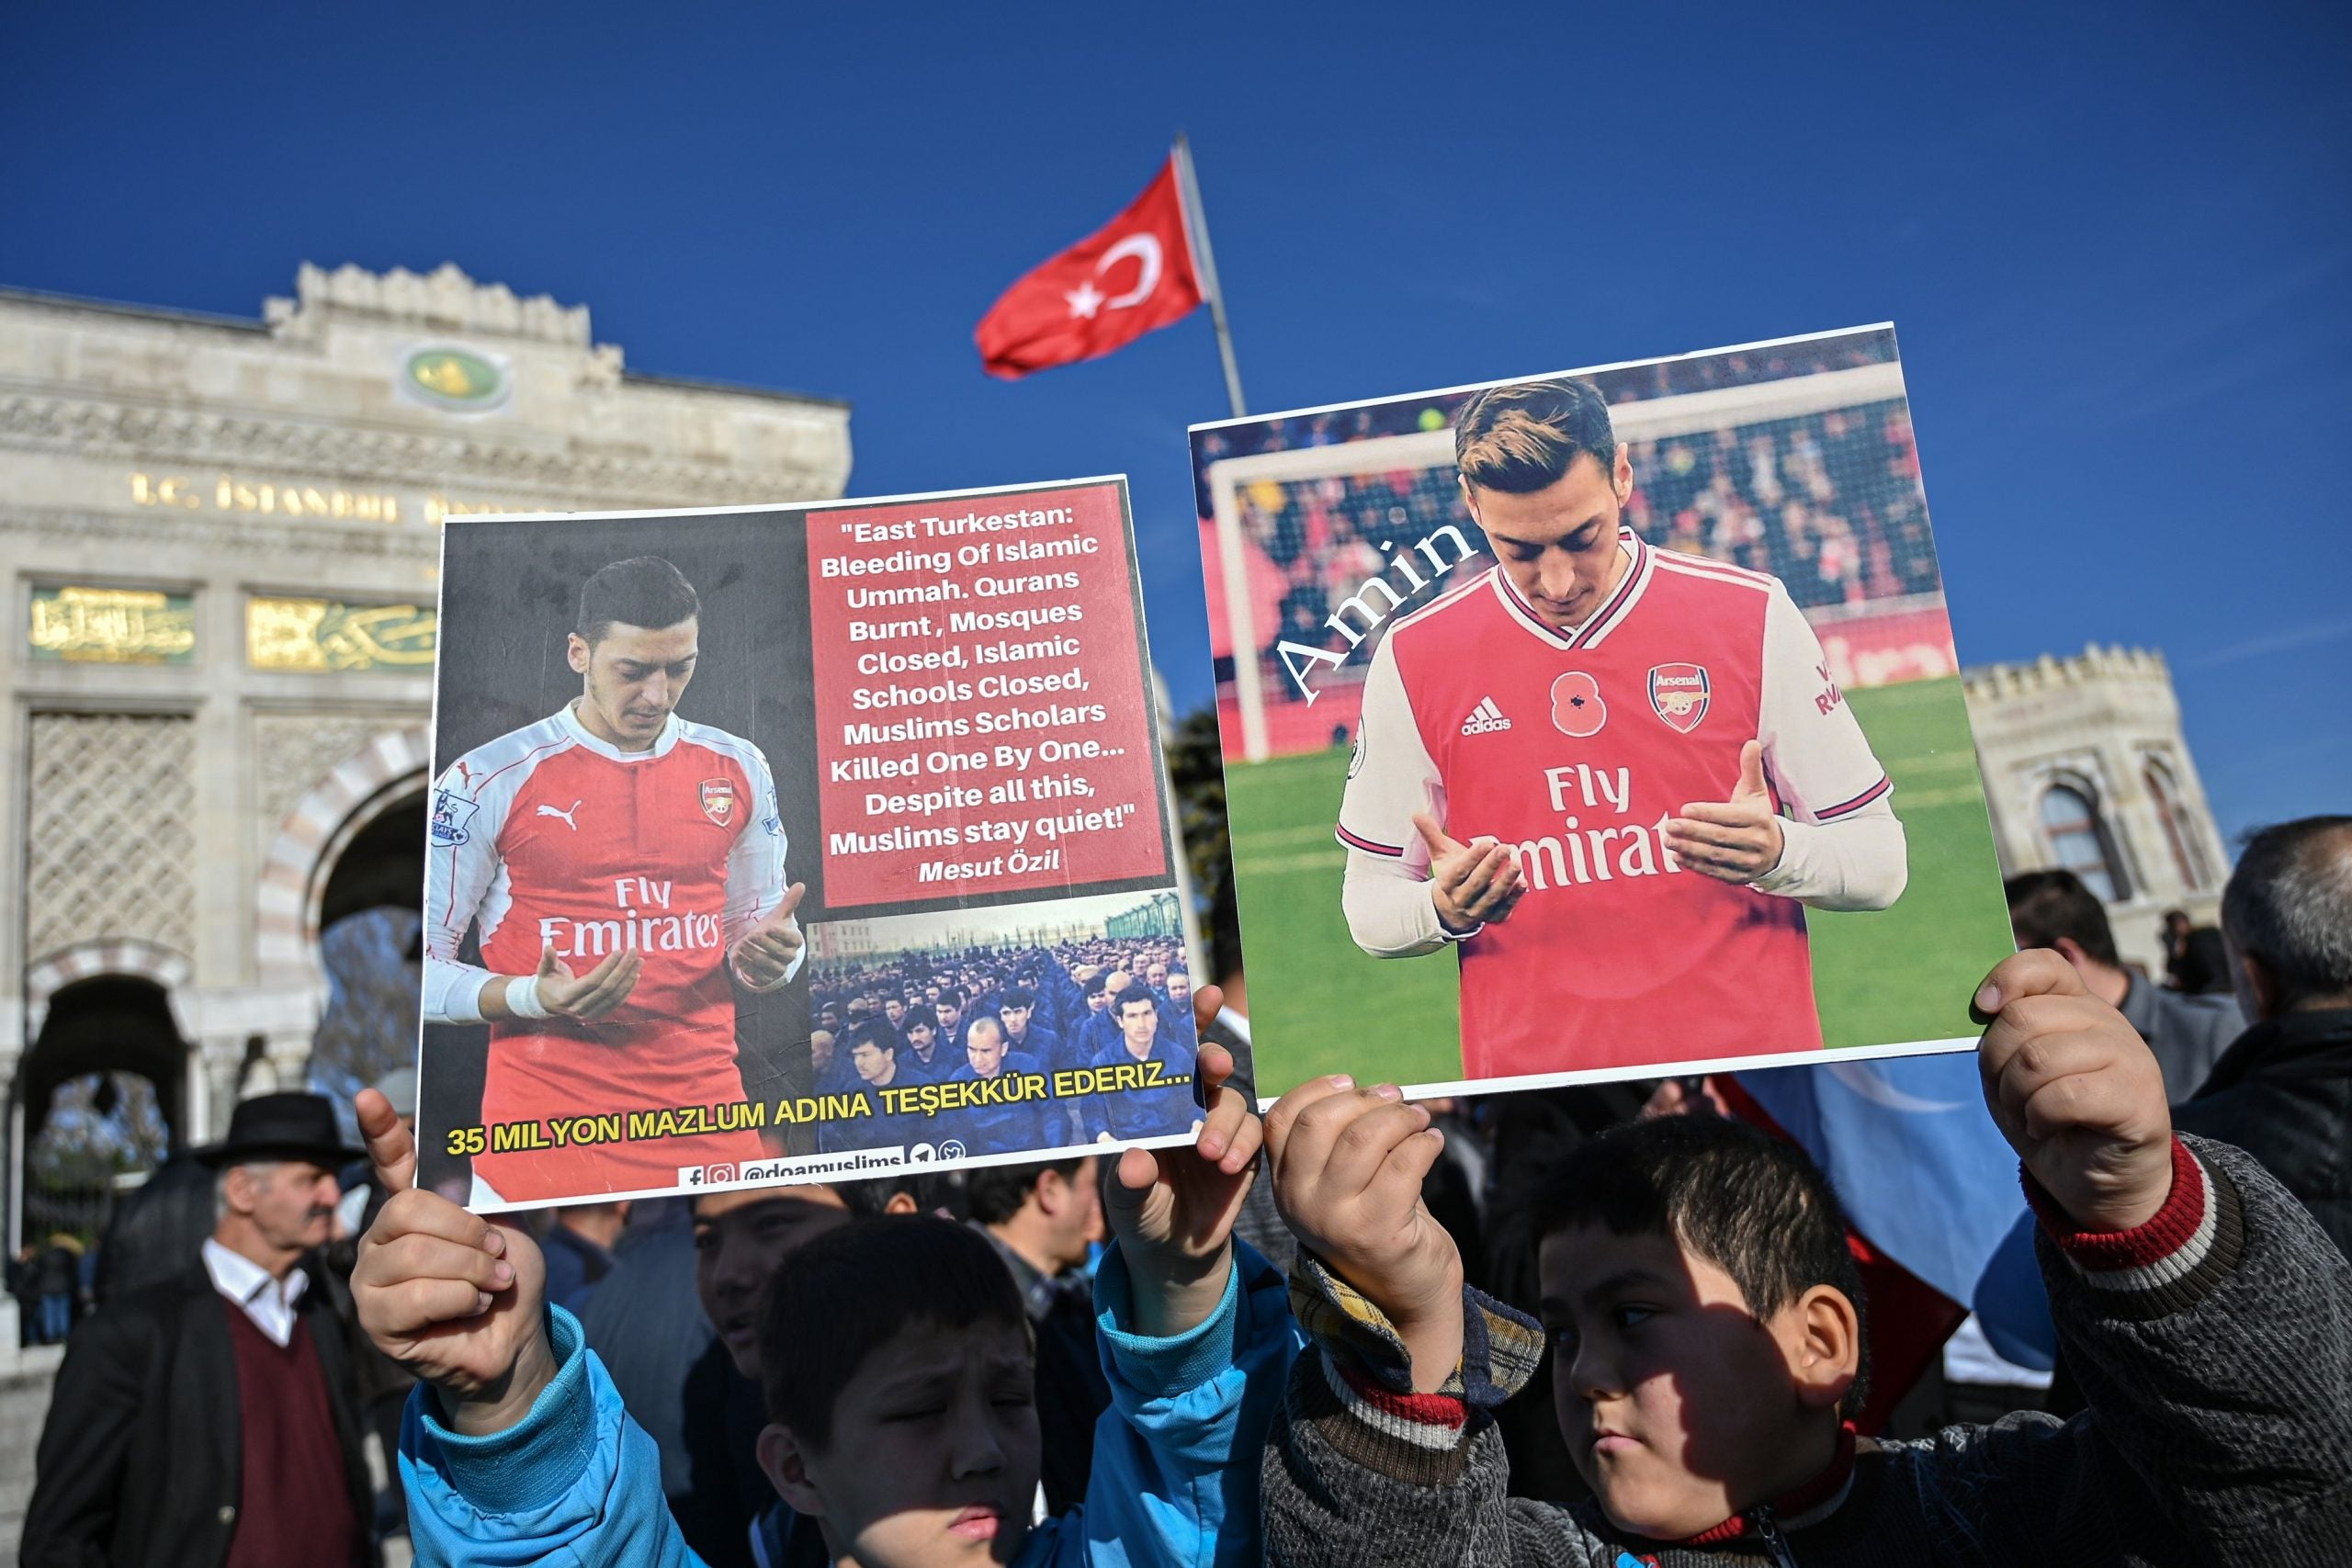 """Arsenal's reaction to Mesut Özil exposes the old lie that """"sport and politics don't mix"""""""